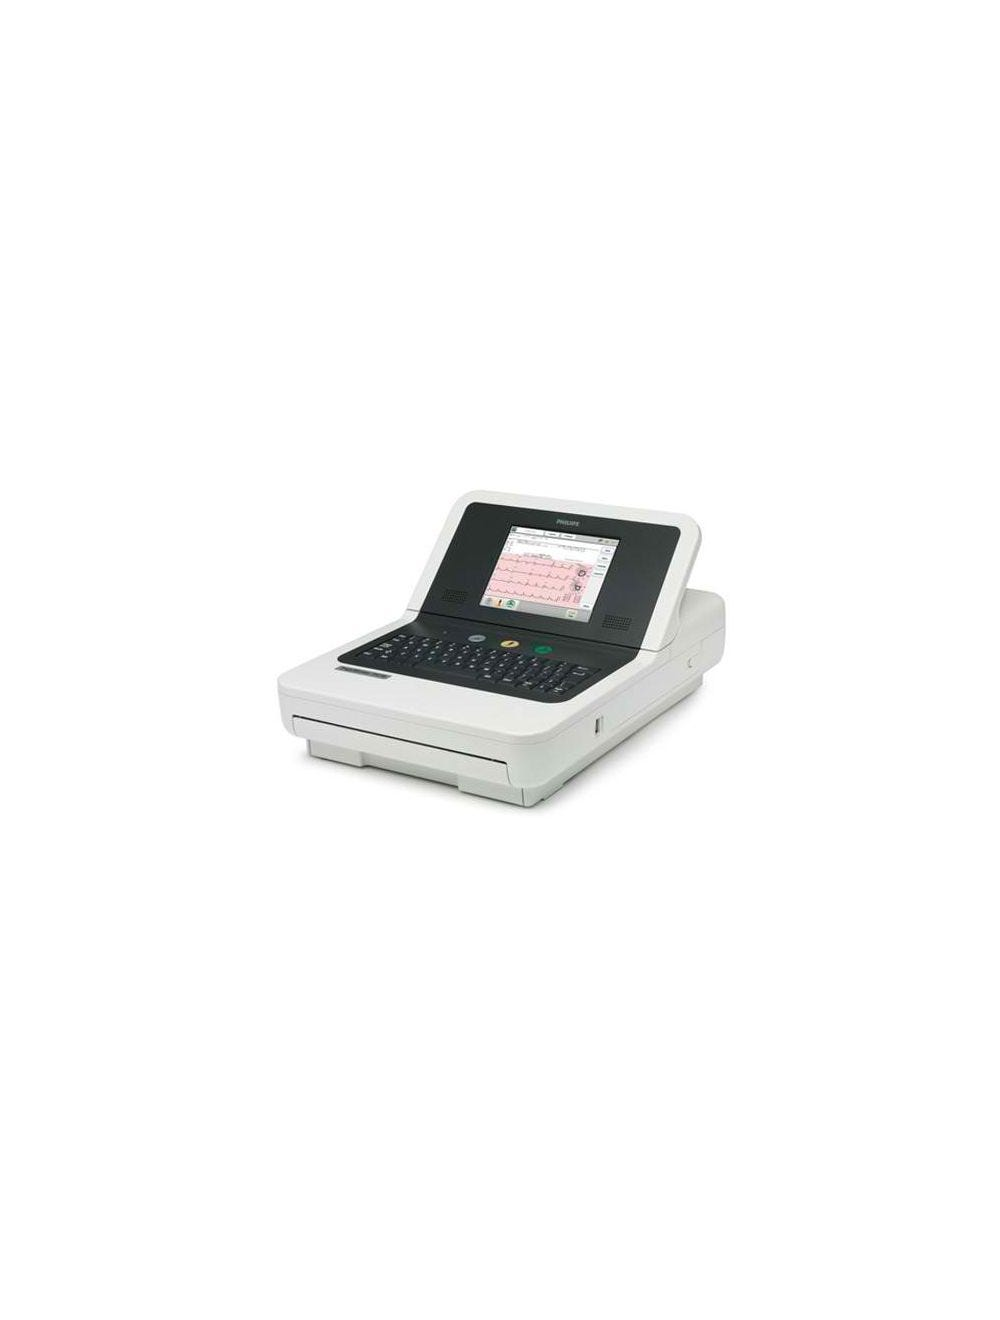 Philips Pagewriter TC30 For Sale - New, Used, Refurbished